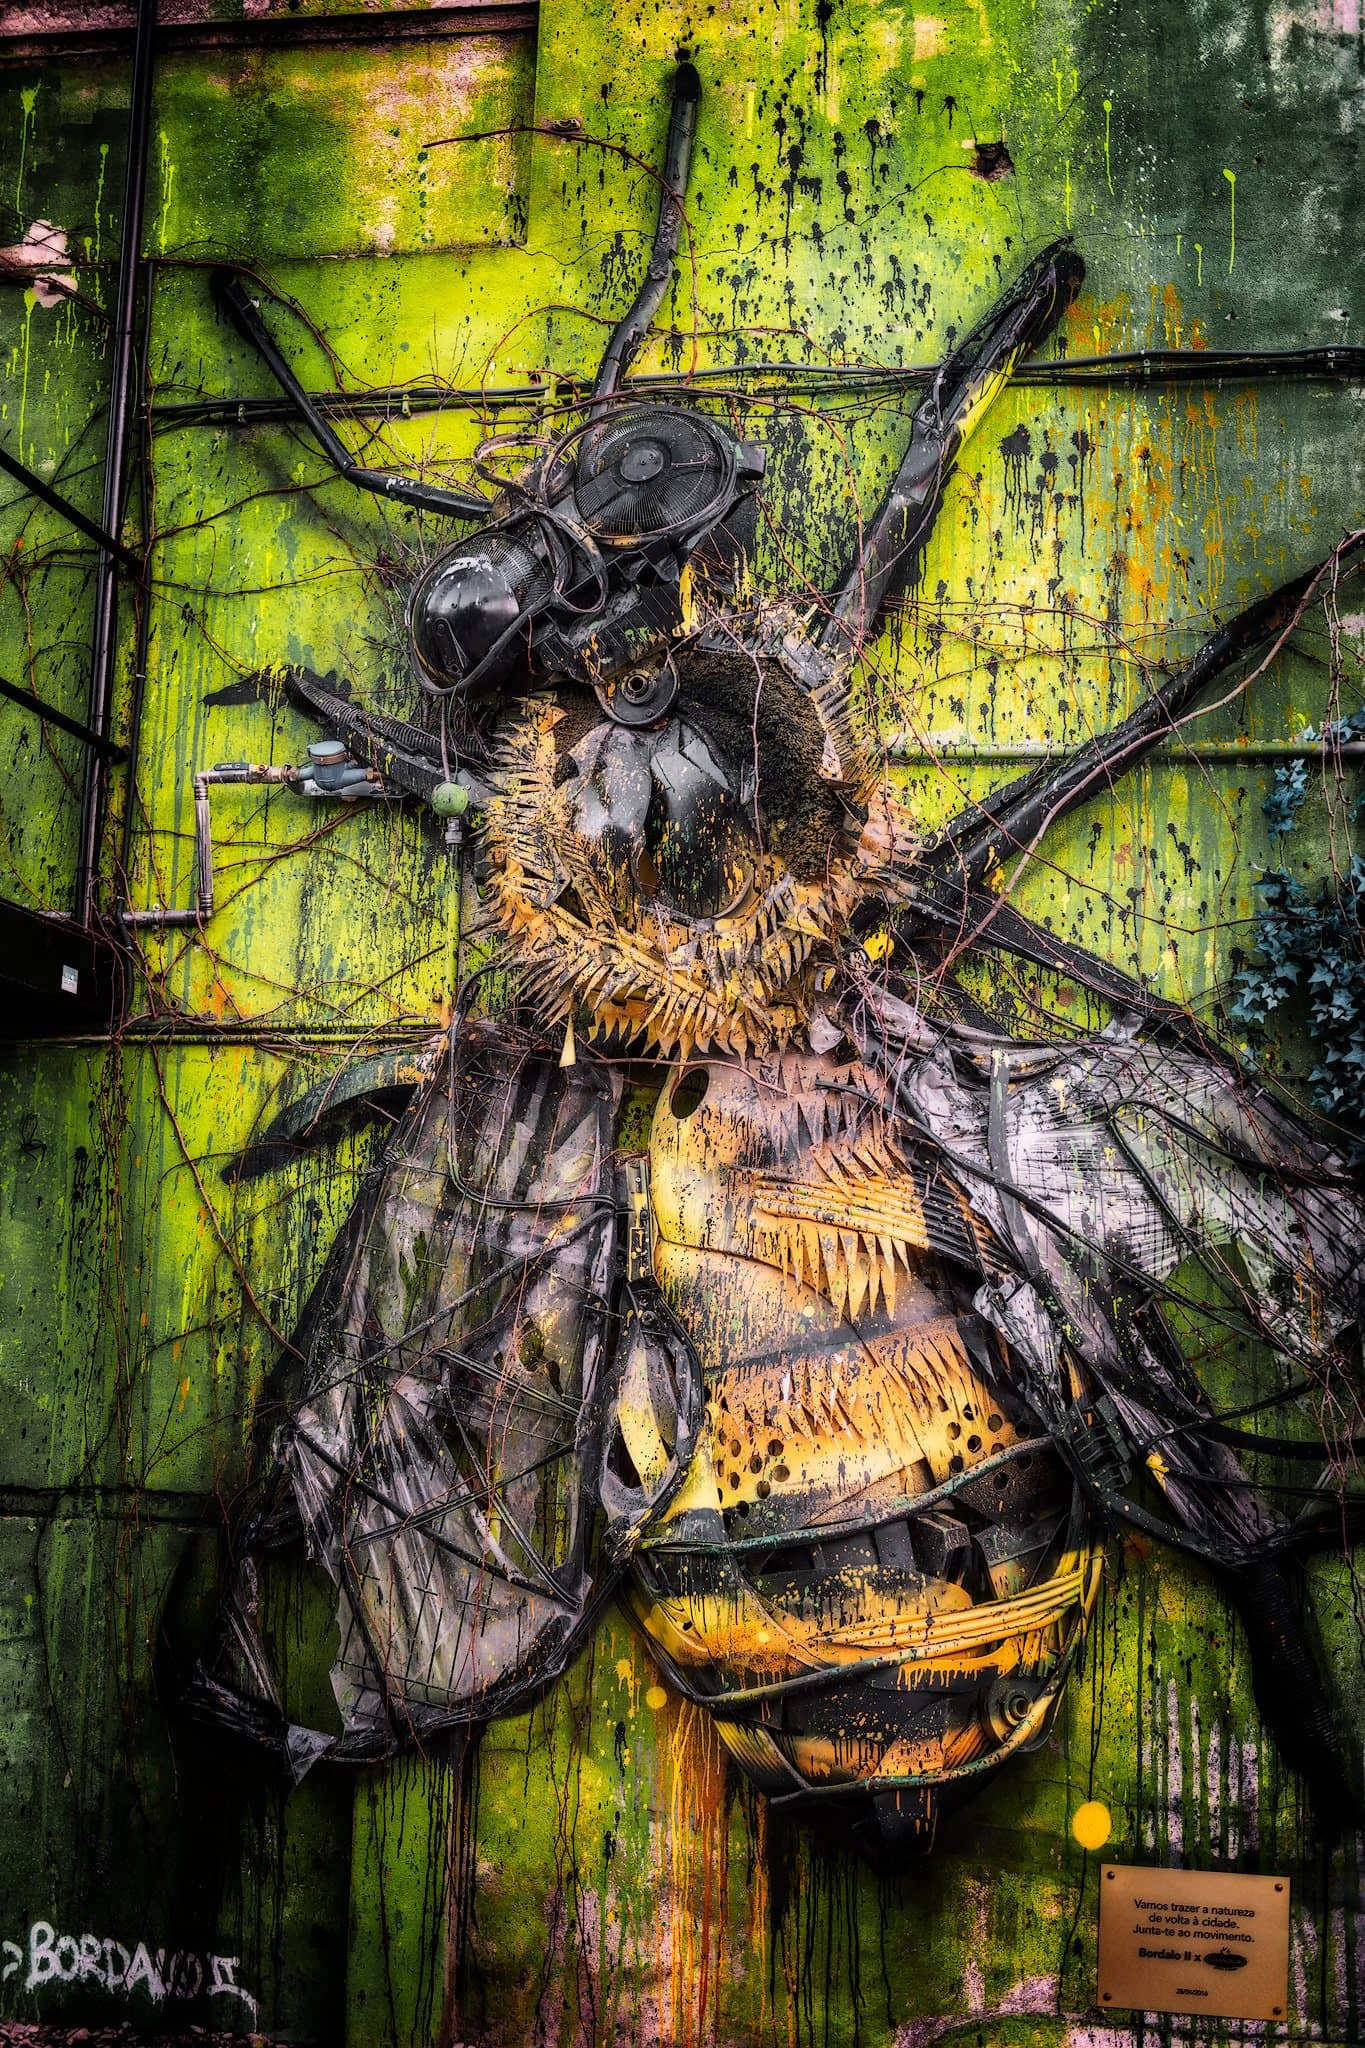 Street art by Bordalo II in Lisbon, Portugal.